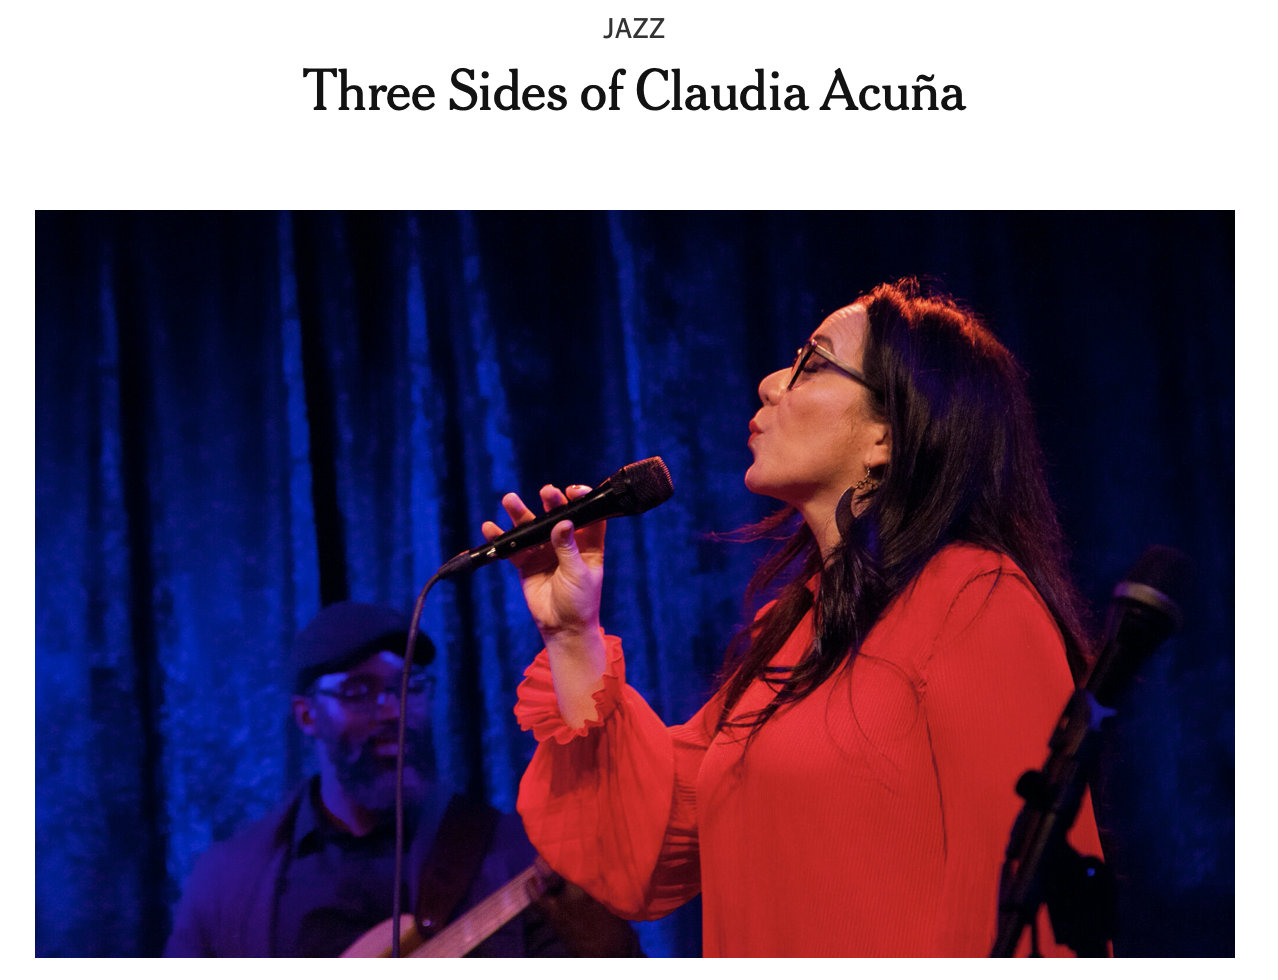 ANNOUNCEMENT: Three Sides of Claudia Acuña – The New York Times